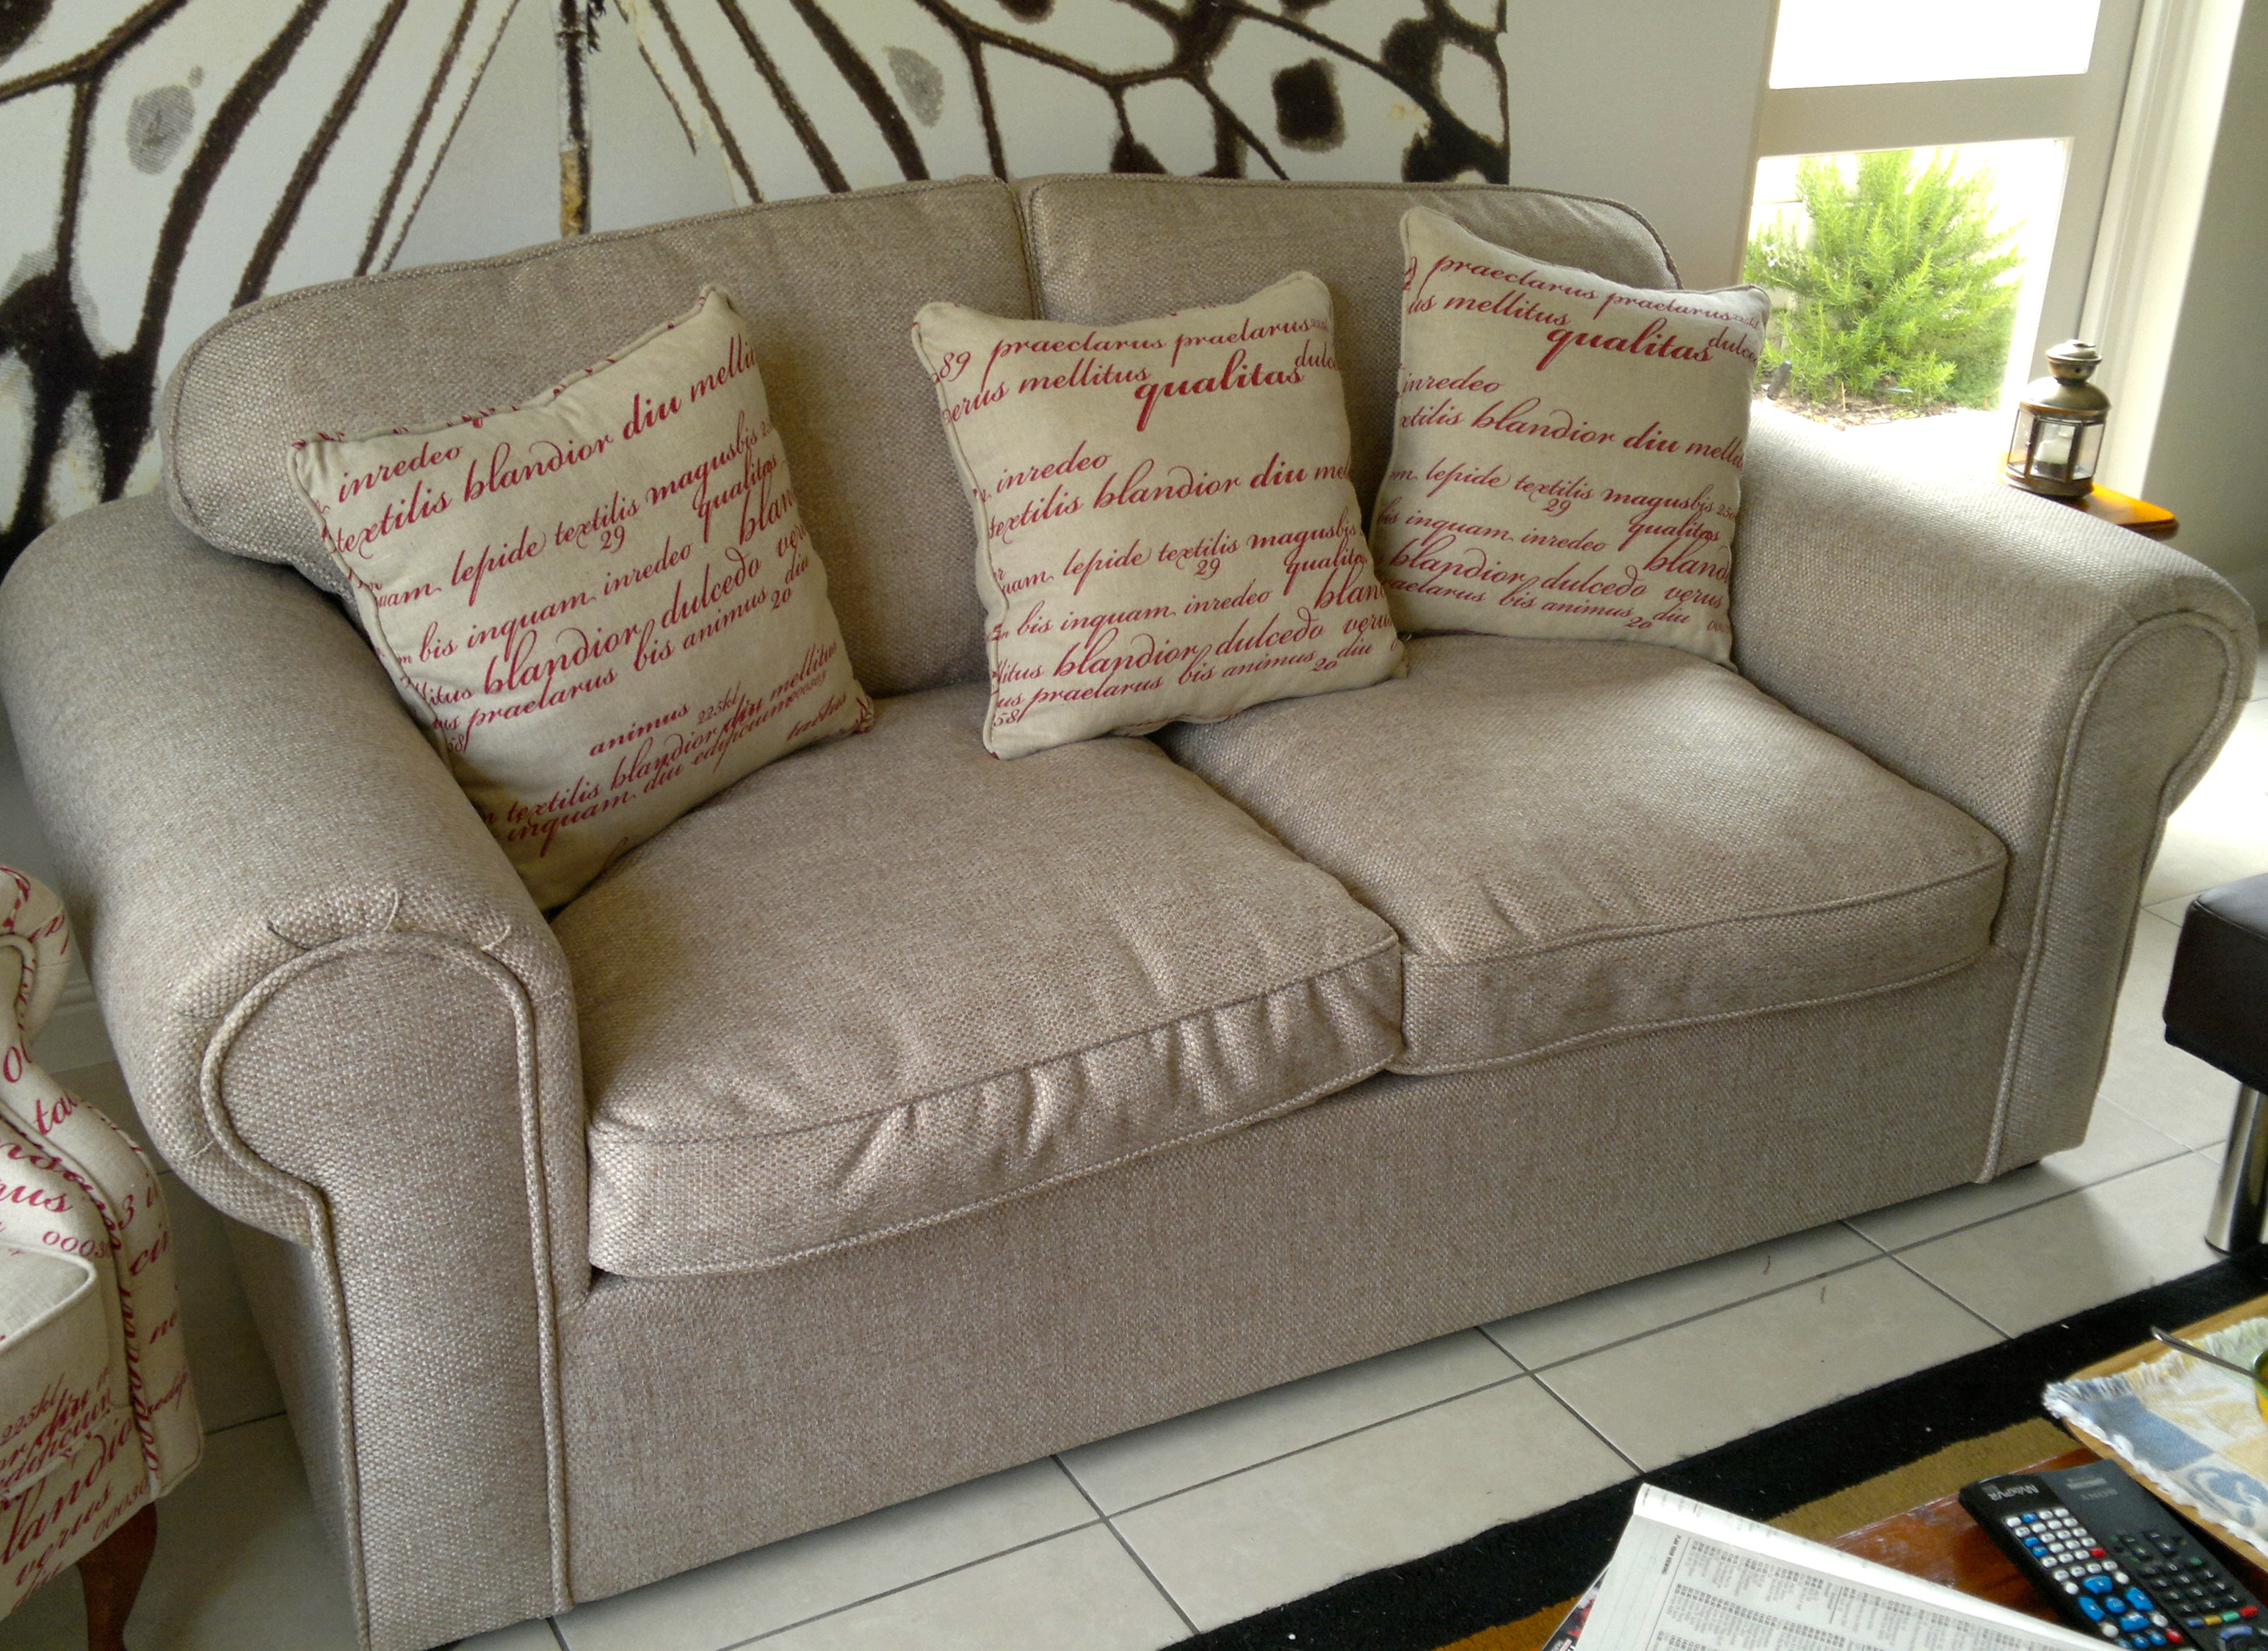 Leather Amp Fabric Couch Upholstery Services Cape Town